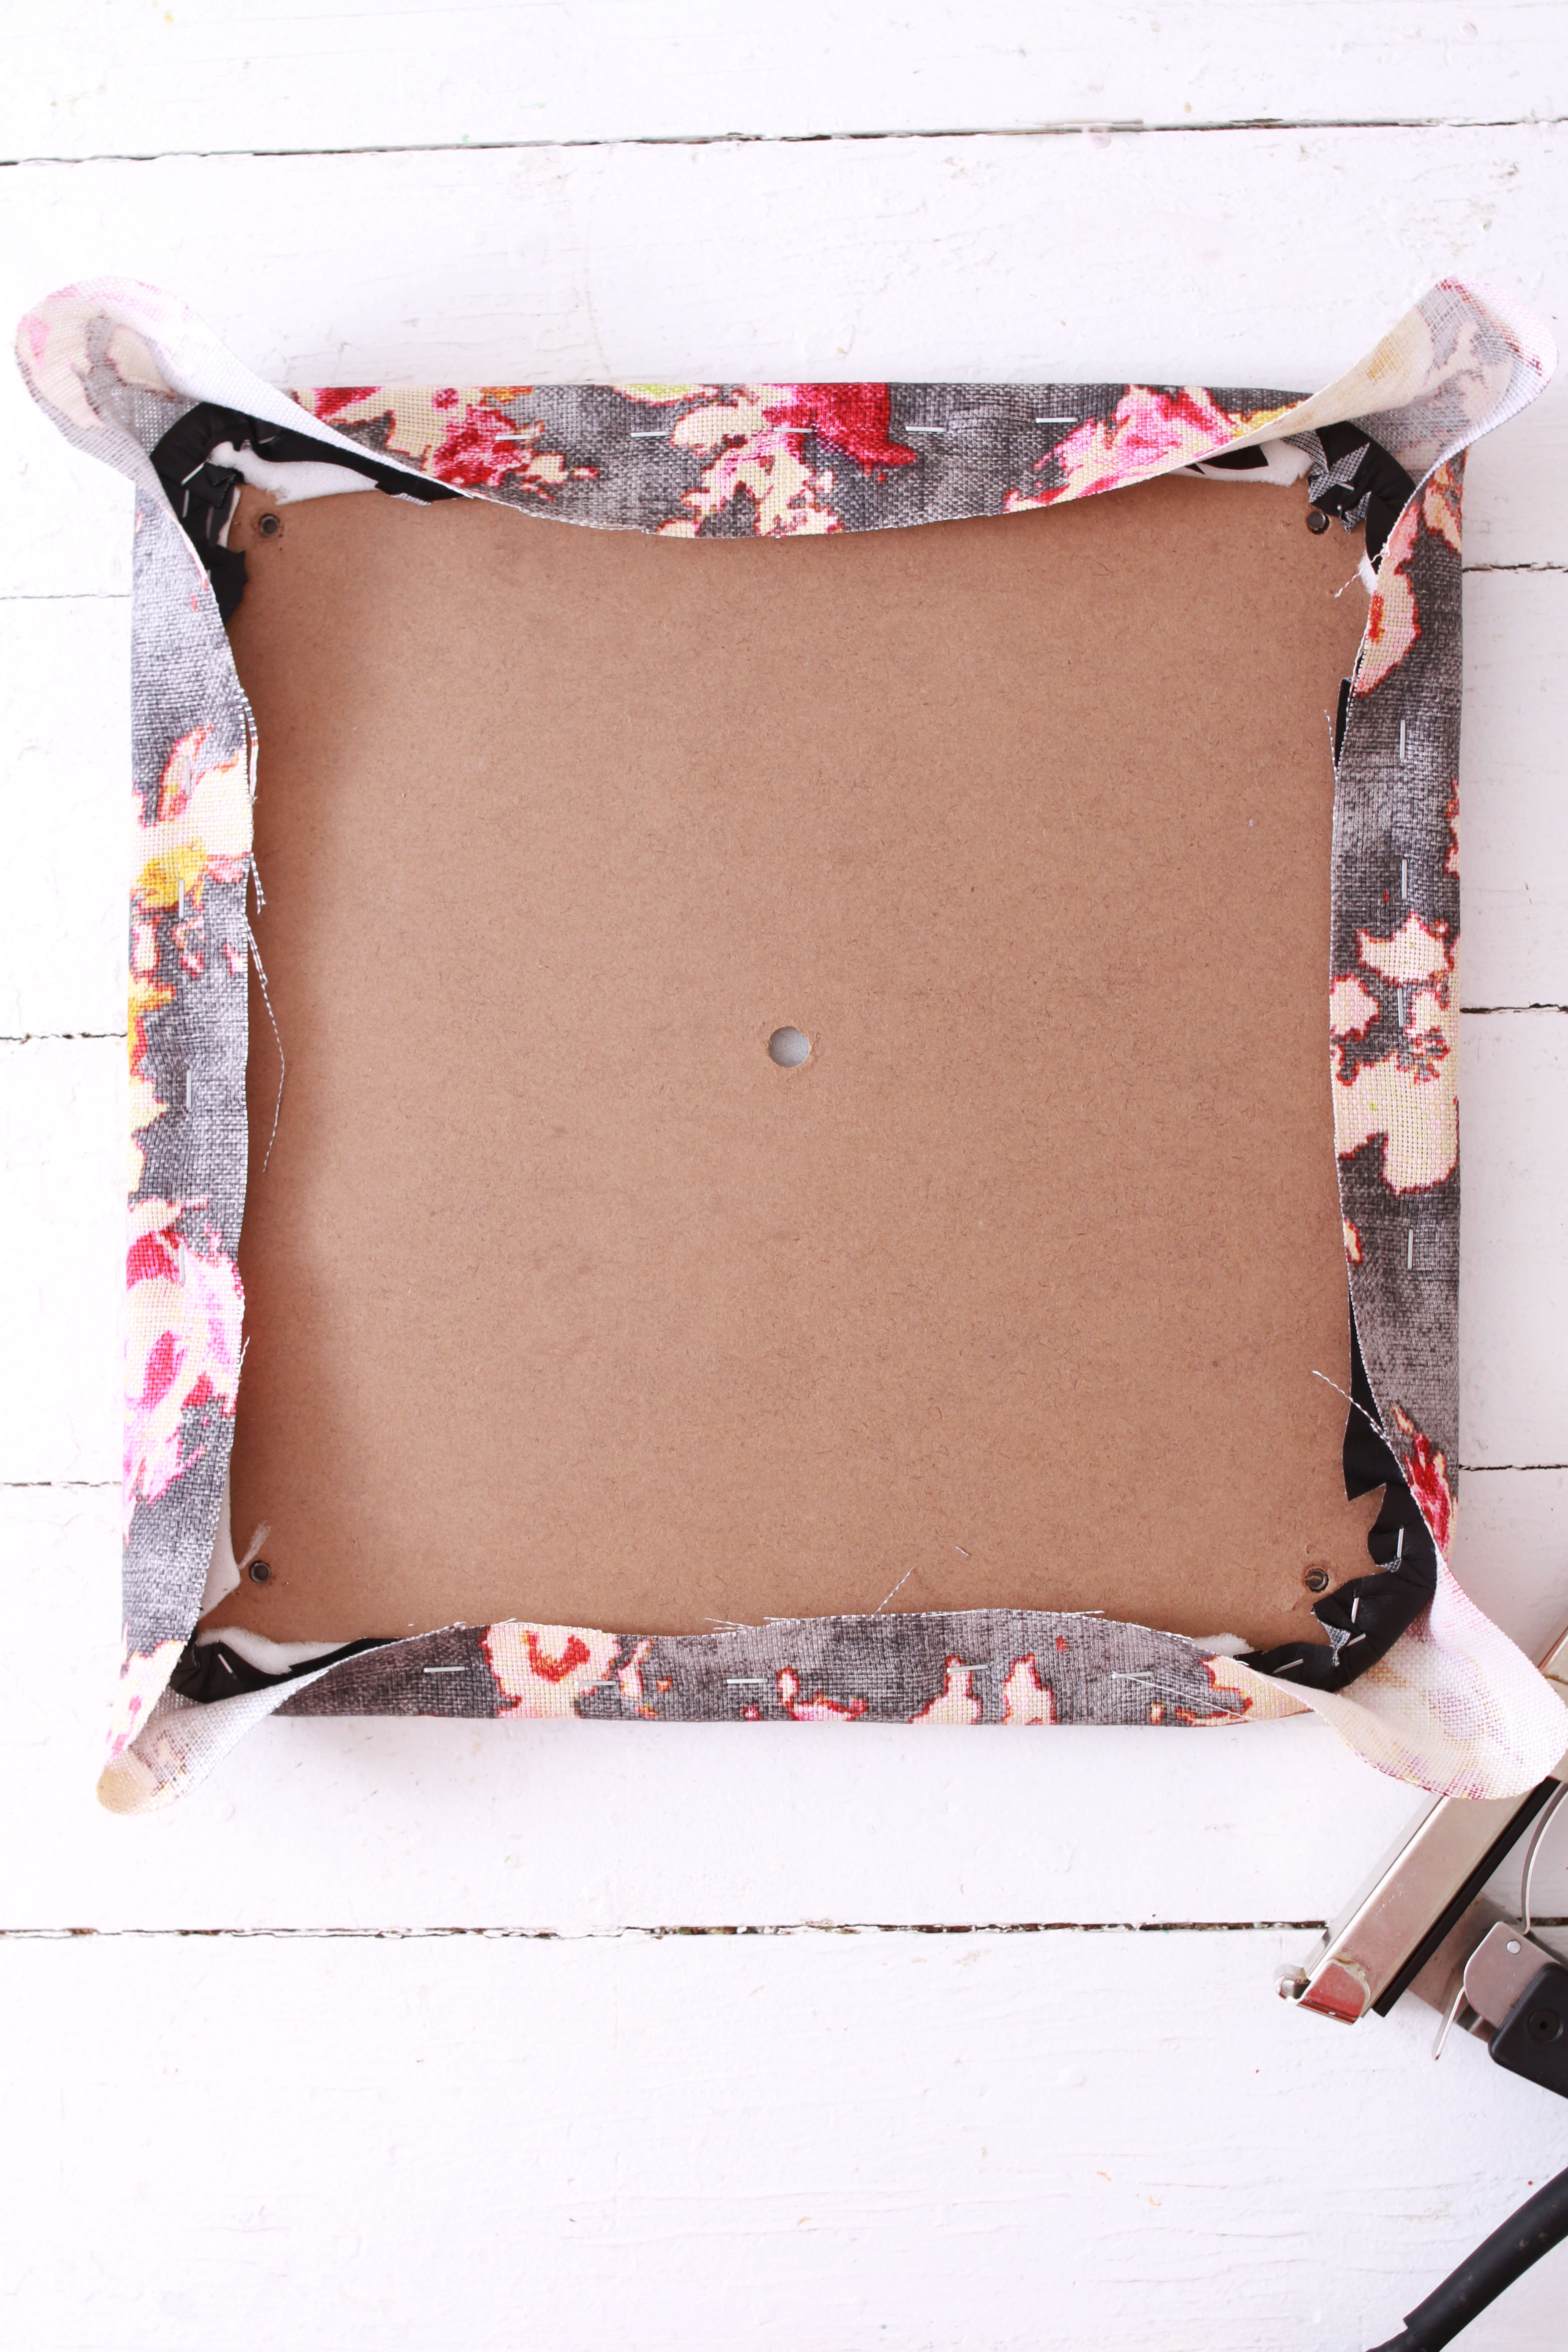 folding chair being reupholstered